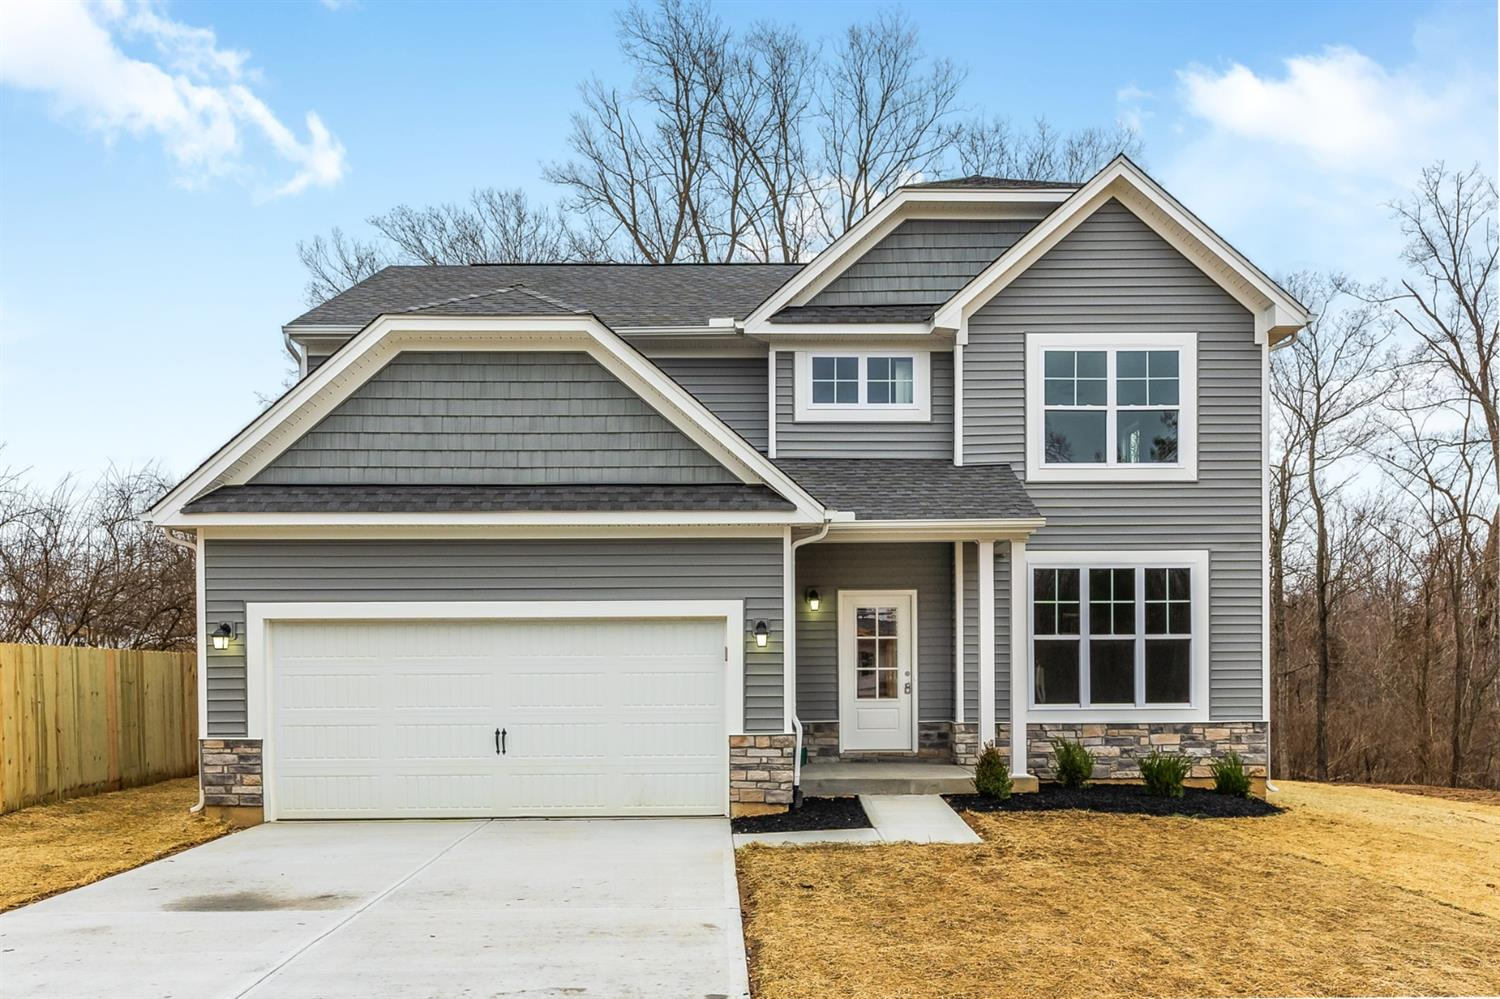 Property for sale at 4390 Wiborg Drive, Union Twp,  Ohio 45244